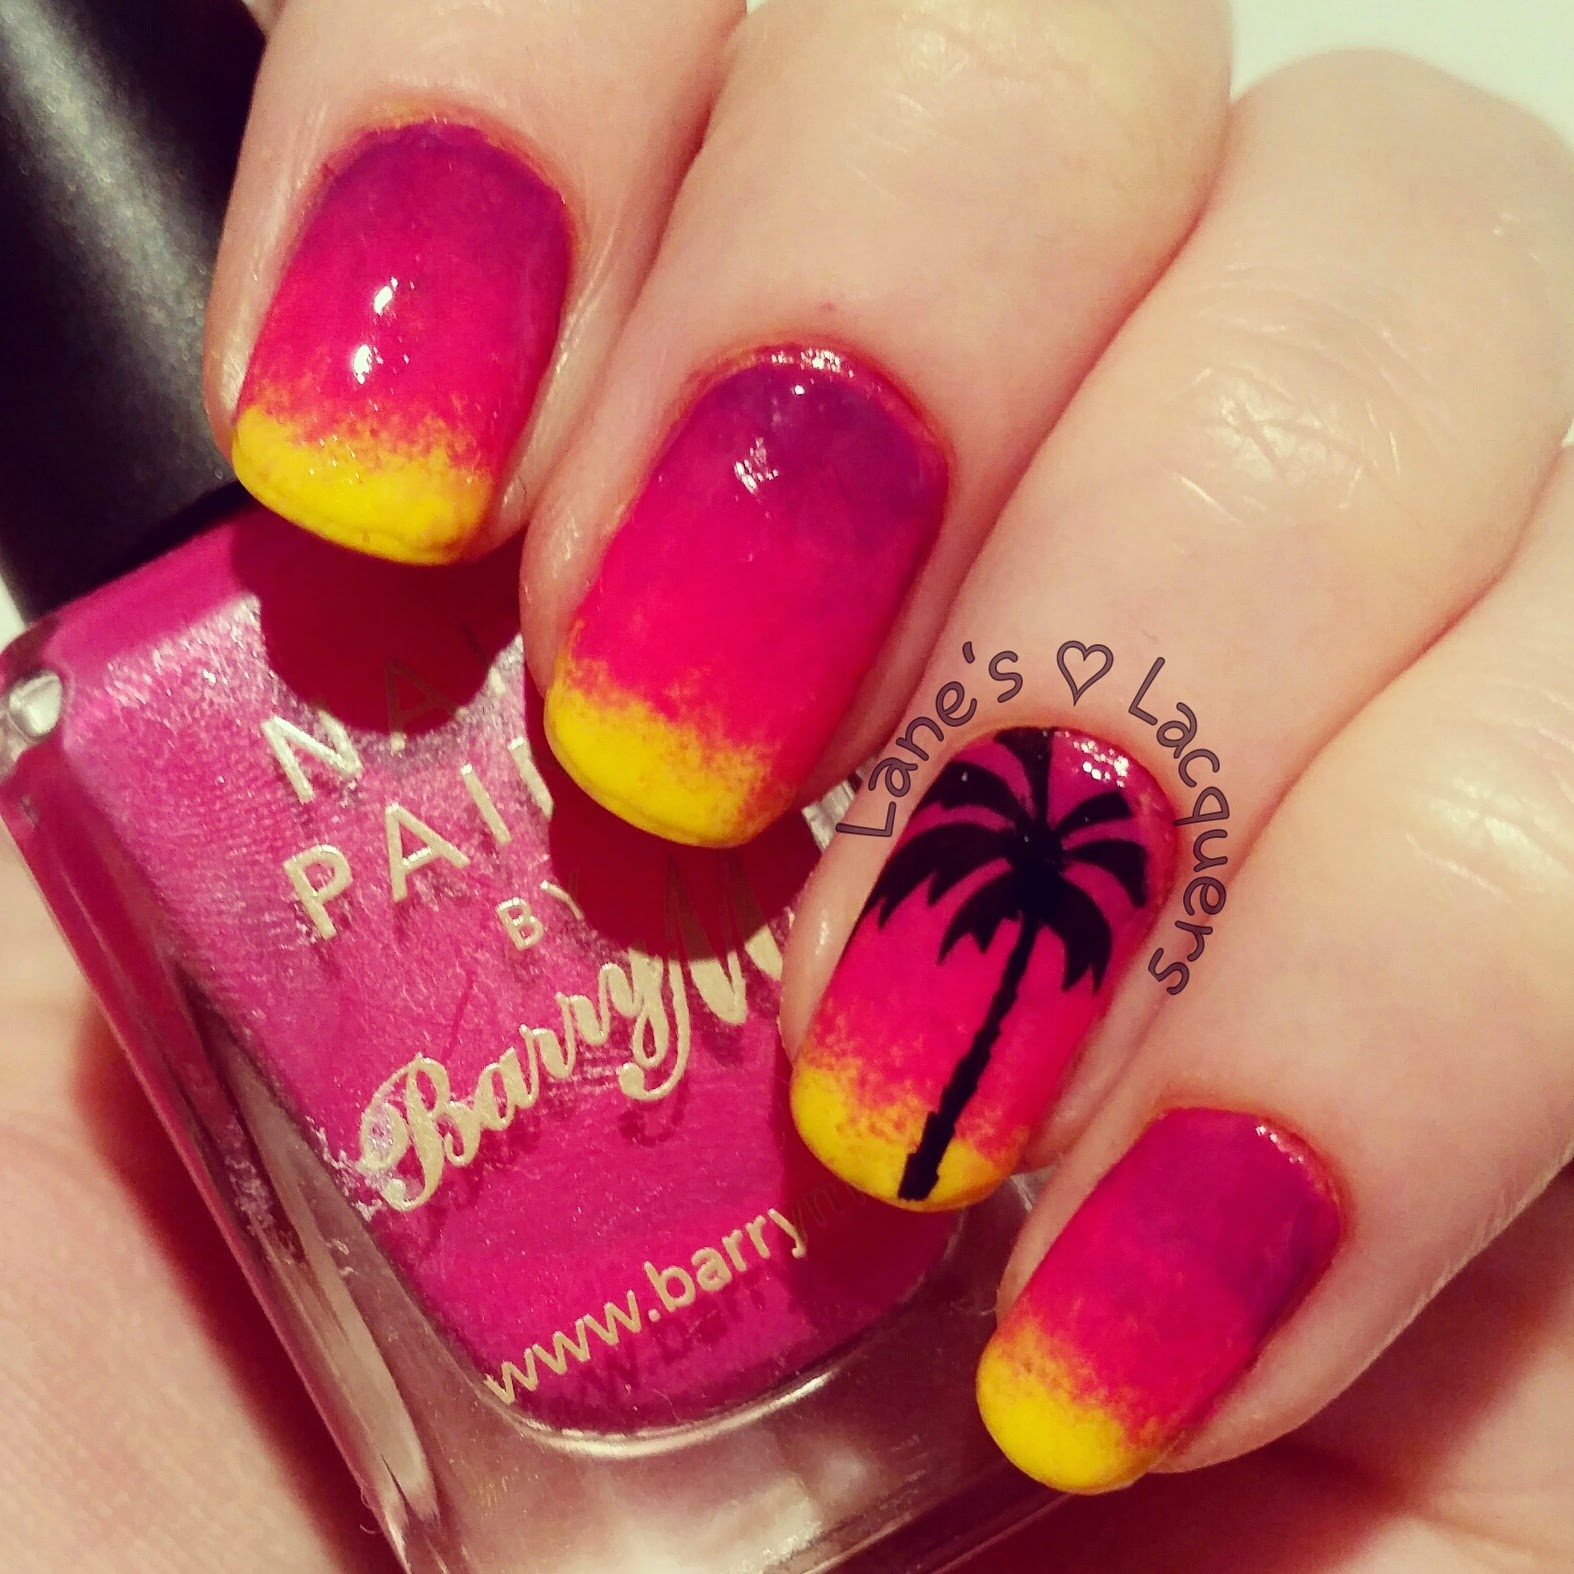 barry-m-beach-sunset-palm-tree-ombre-tranquility-nail-art